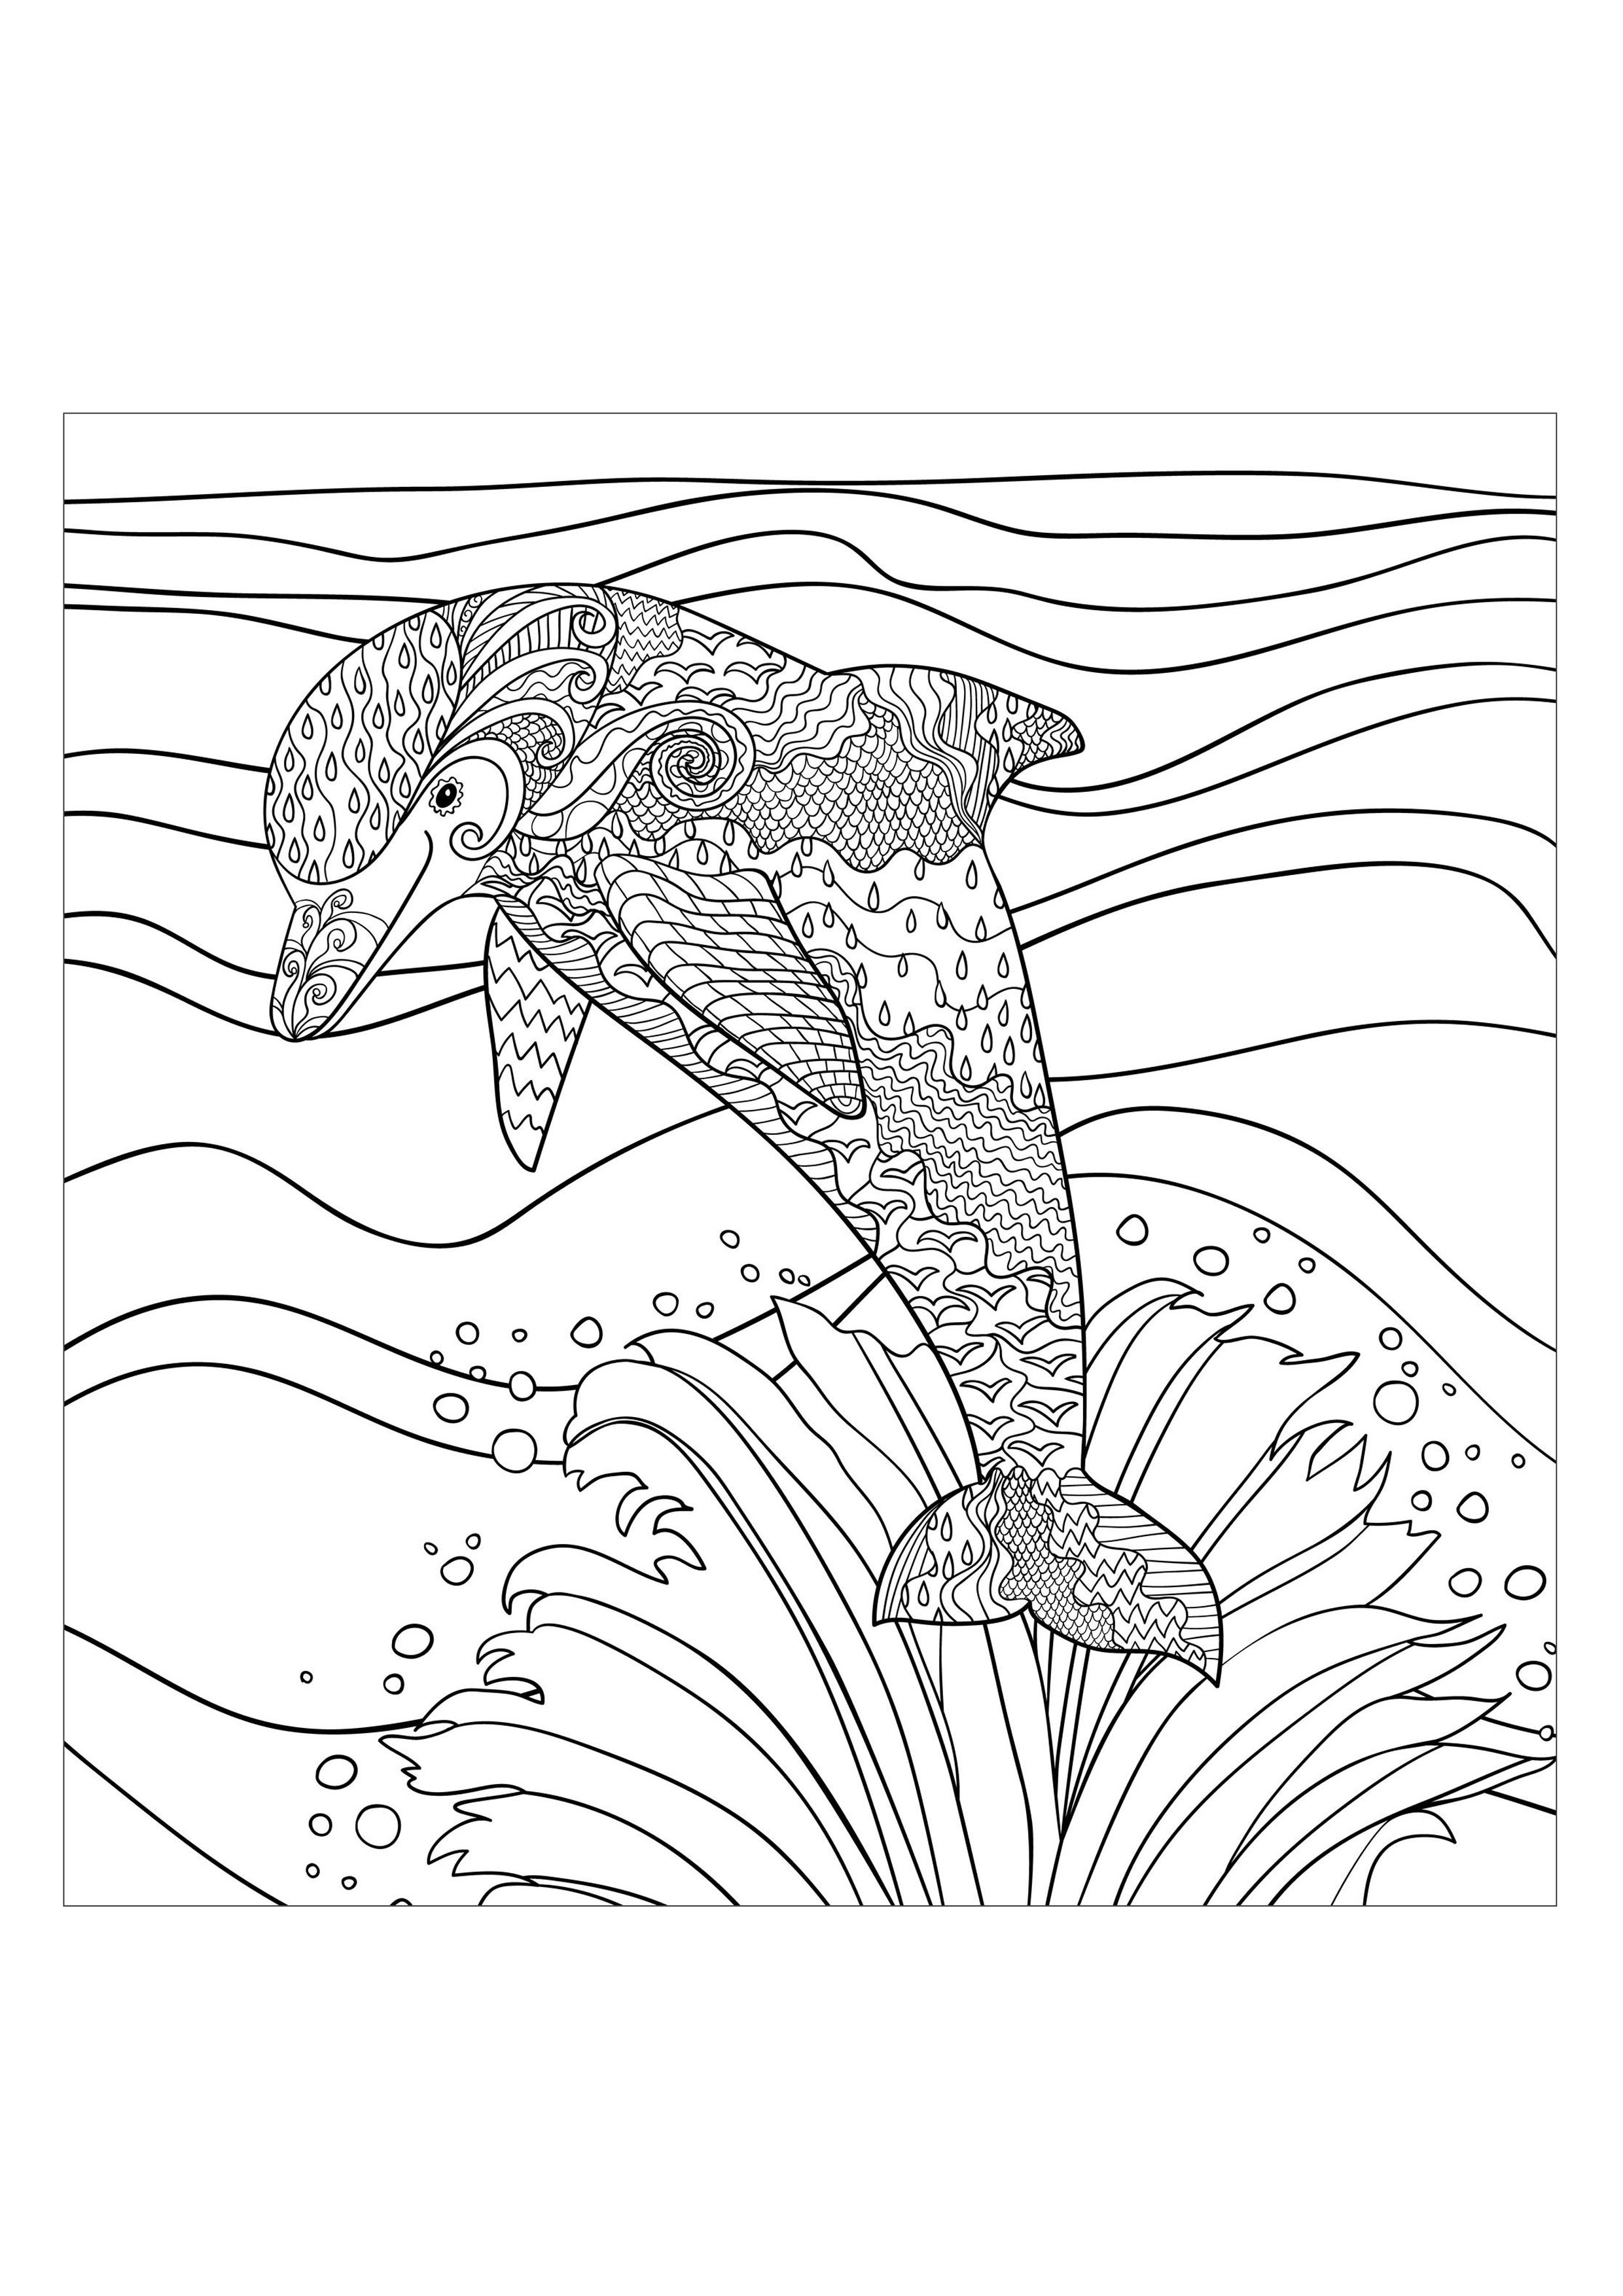 Sea Dolphin Water Worlds Coloring Pages For Adults Justcolor